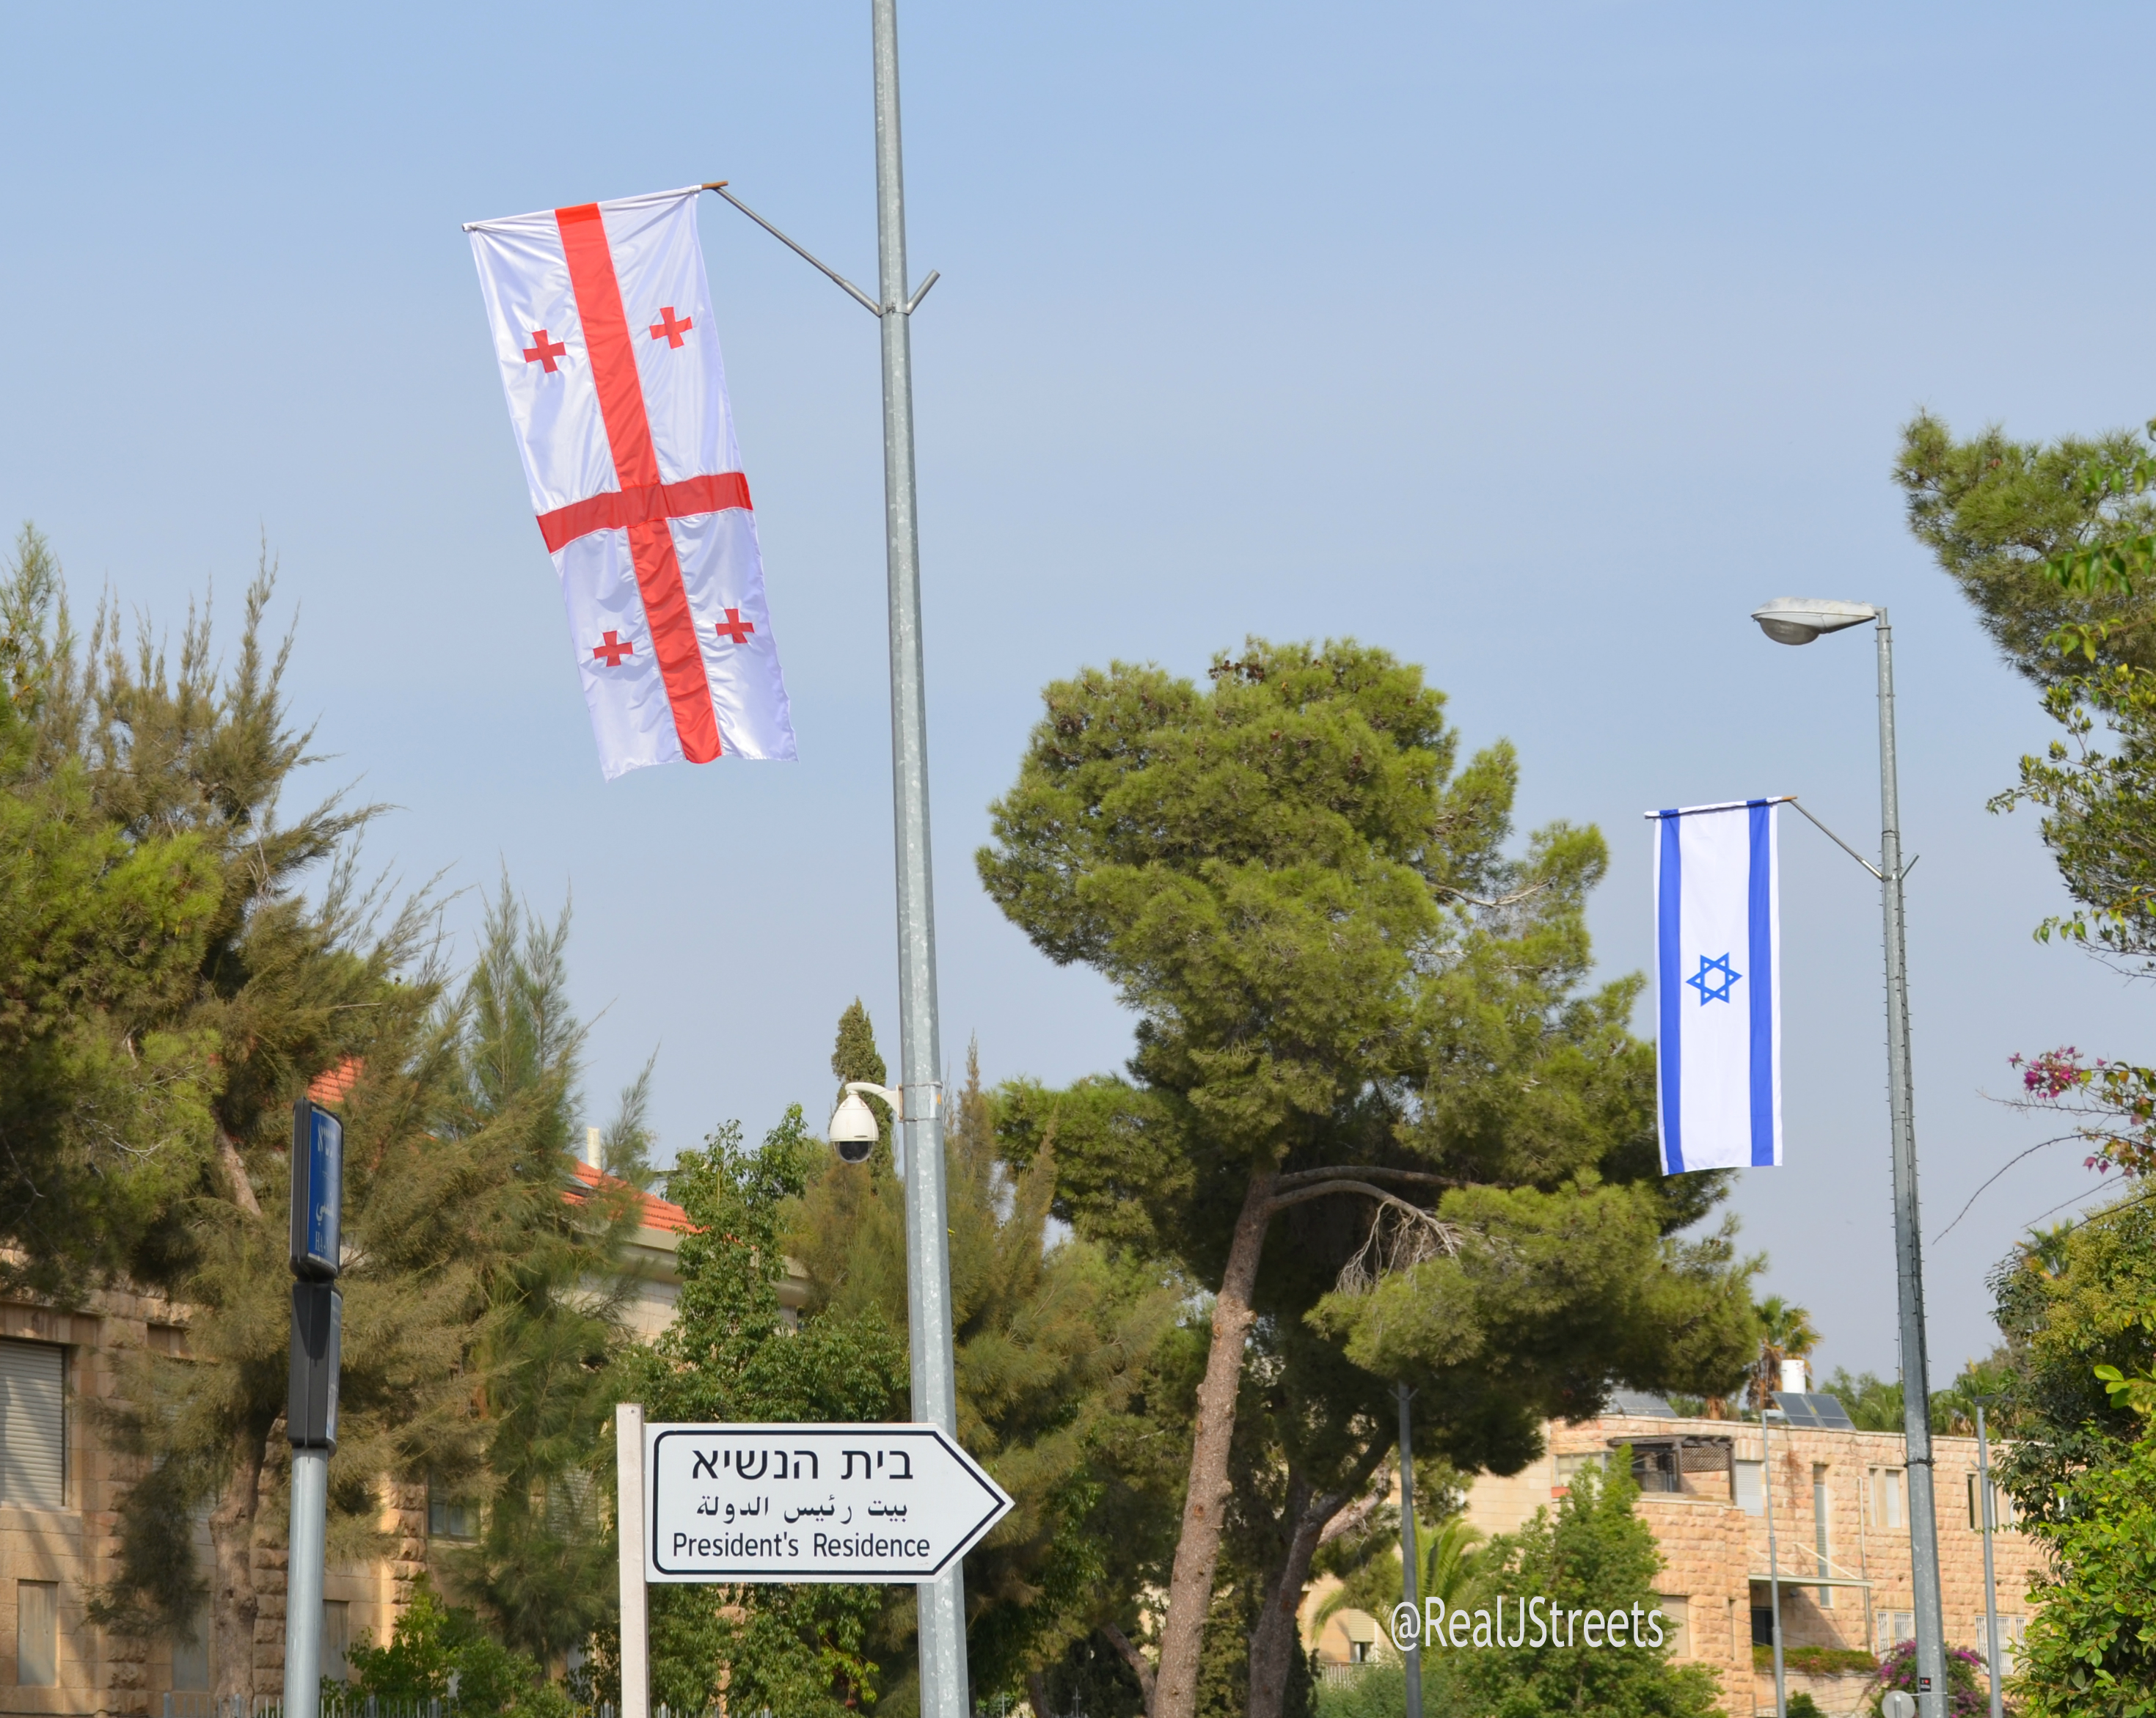 Israel welcomes president with flag